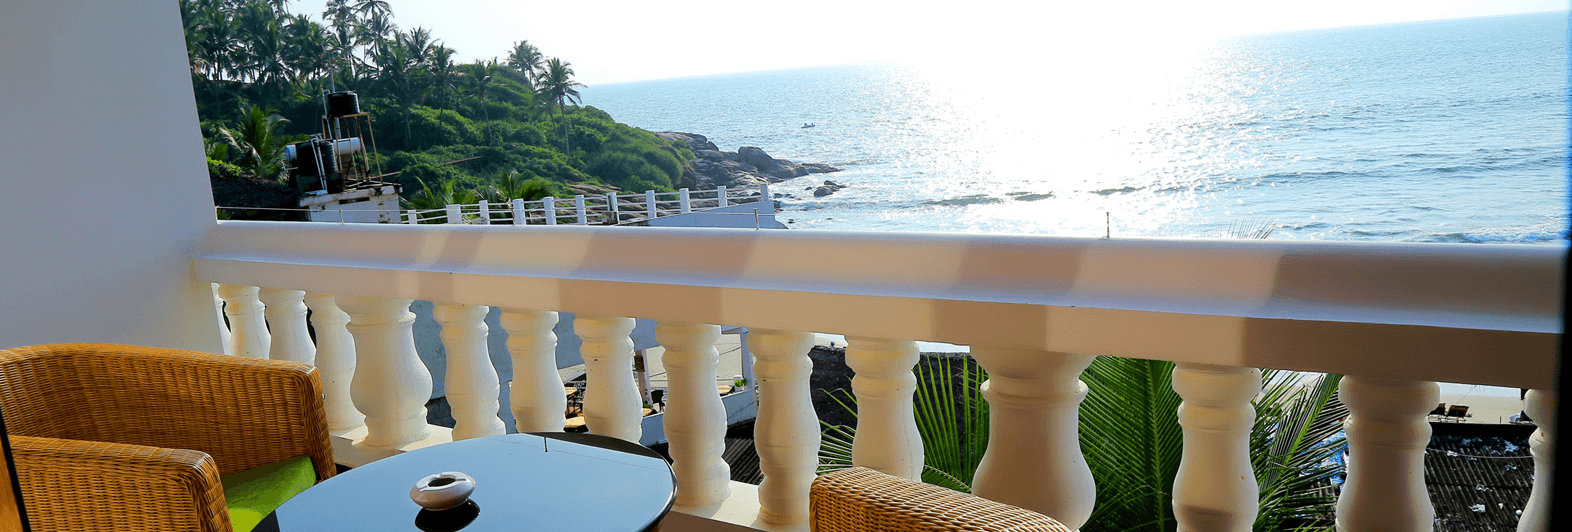 Best sea facing rooms in kovalam